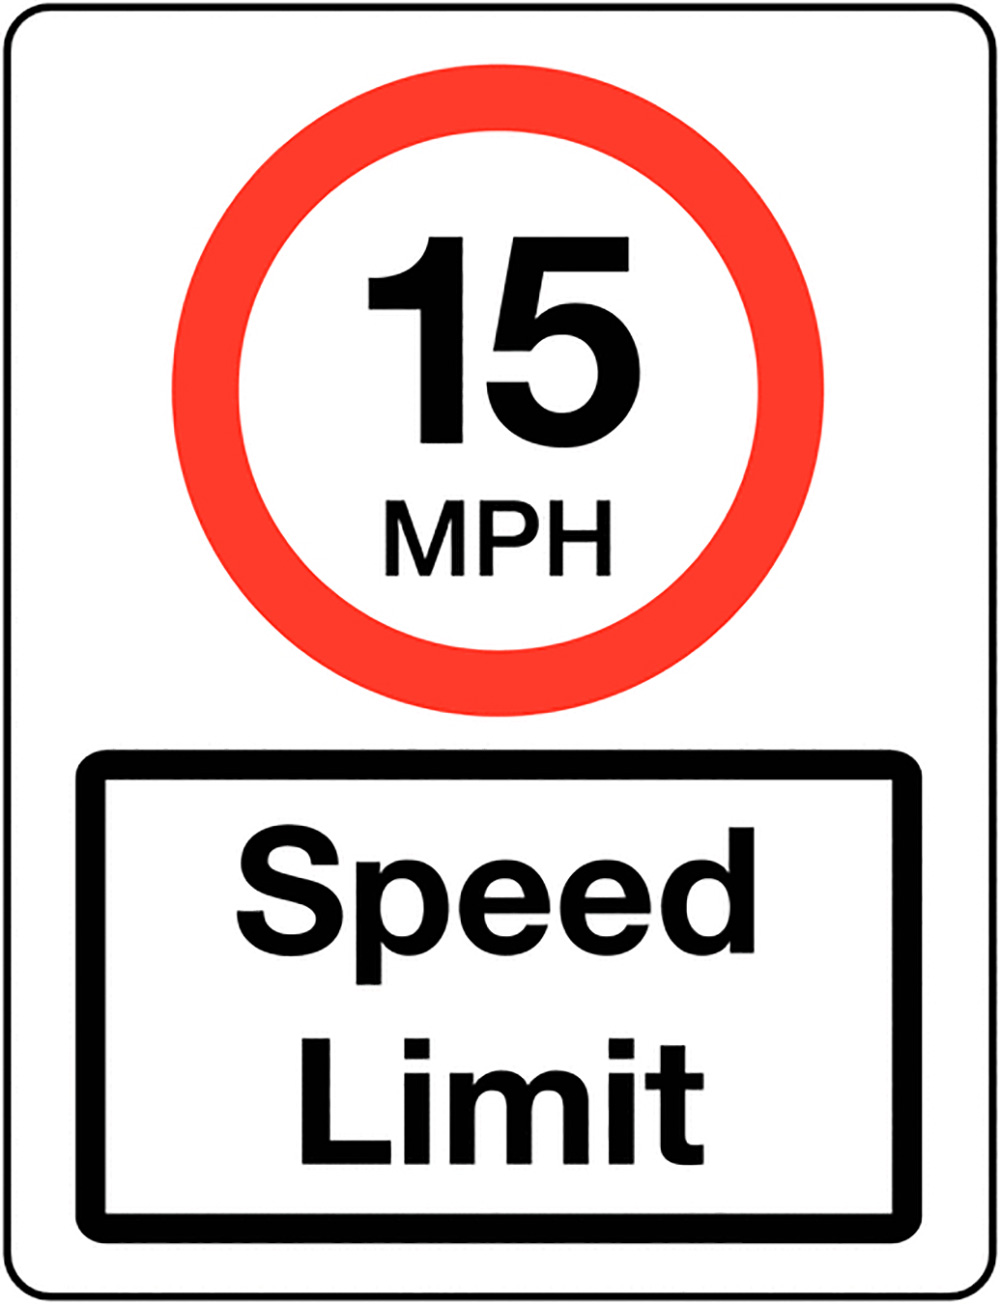 15mph Speed Limit Class 1 Reflective Traffic Sign  Wall  600x450mm Reflective Safety Sign